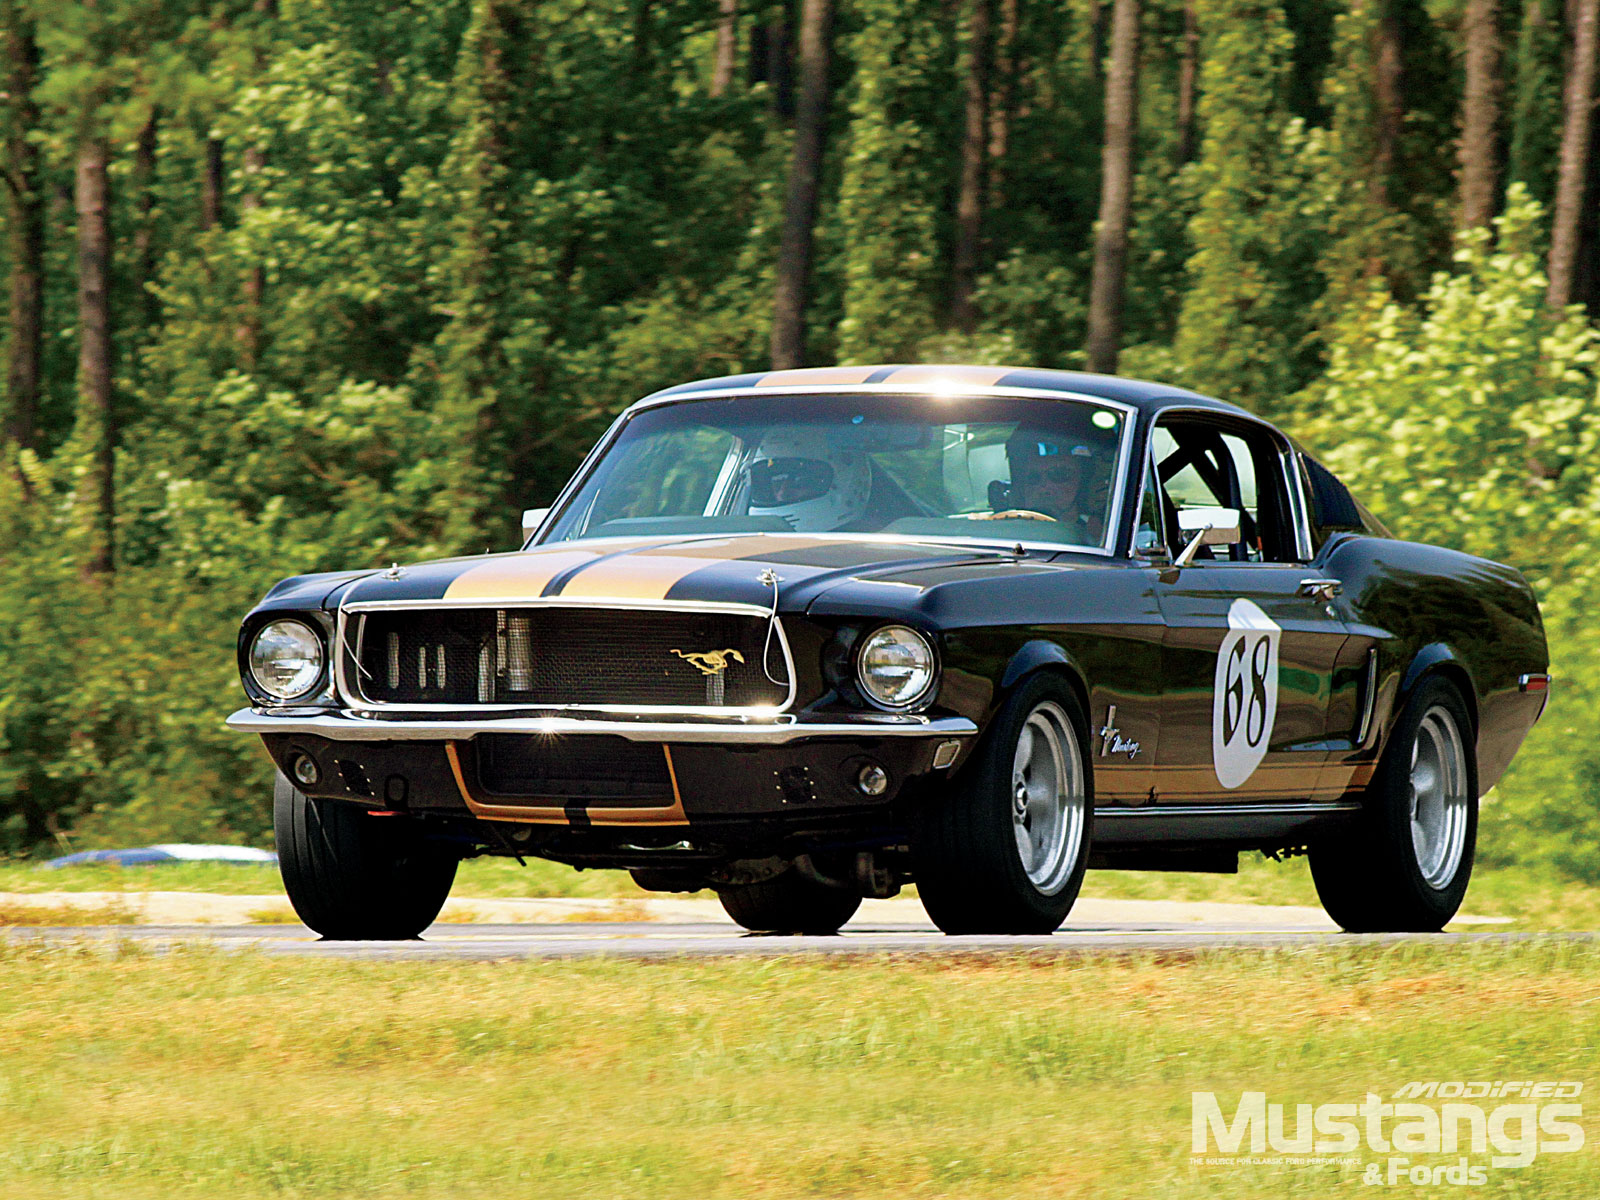 1968 Ford Mustang Gt Fastback Road Course